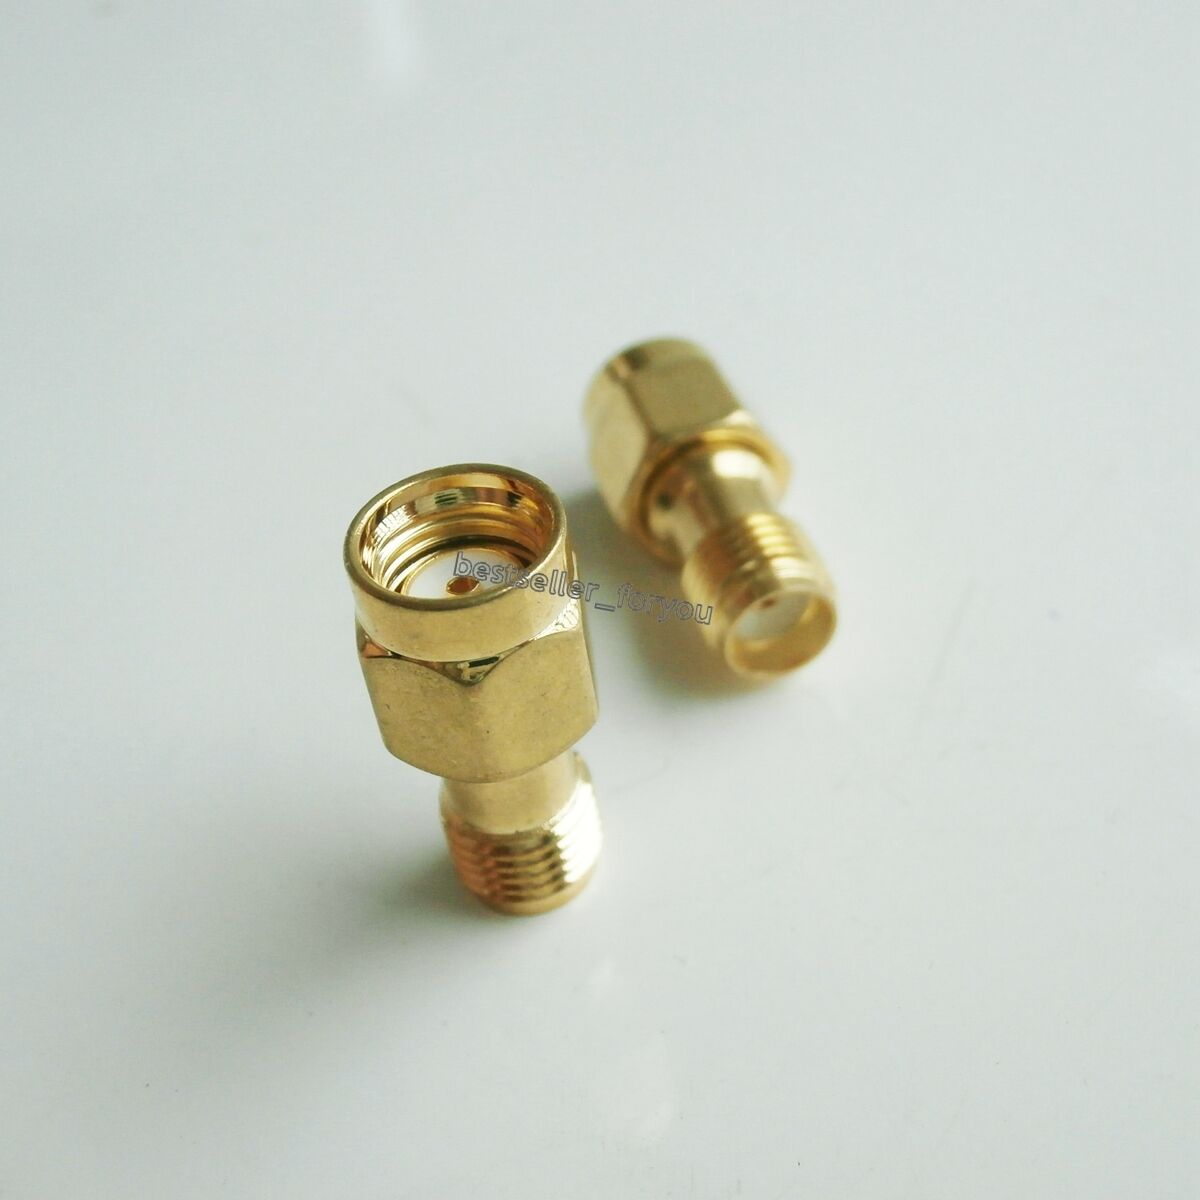 2pcs Rpsma Rp Sma Male Plug To Female Jack Straight Rf Connector Kabel Pigtail Ufl Coaxial Adapter 1 Of 5